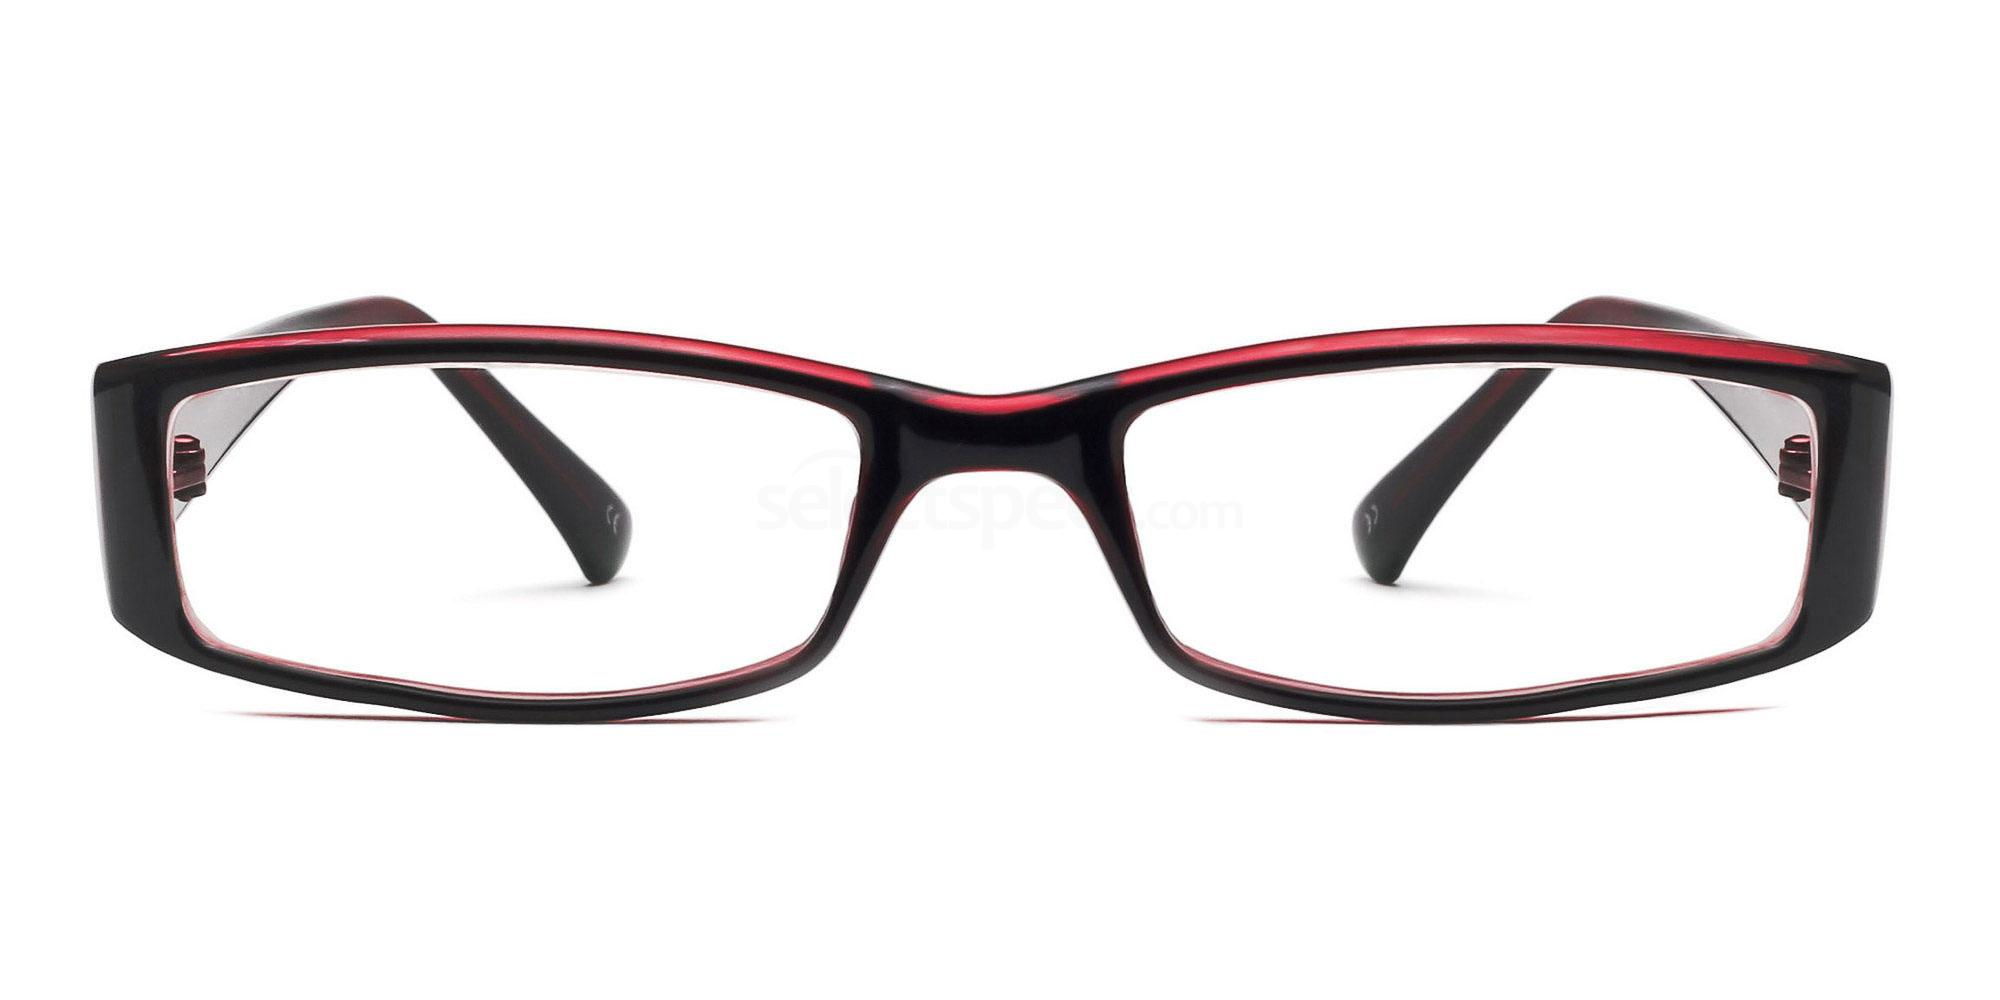 C38 P2251 - Black and Red Glasses, Savannah